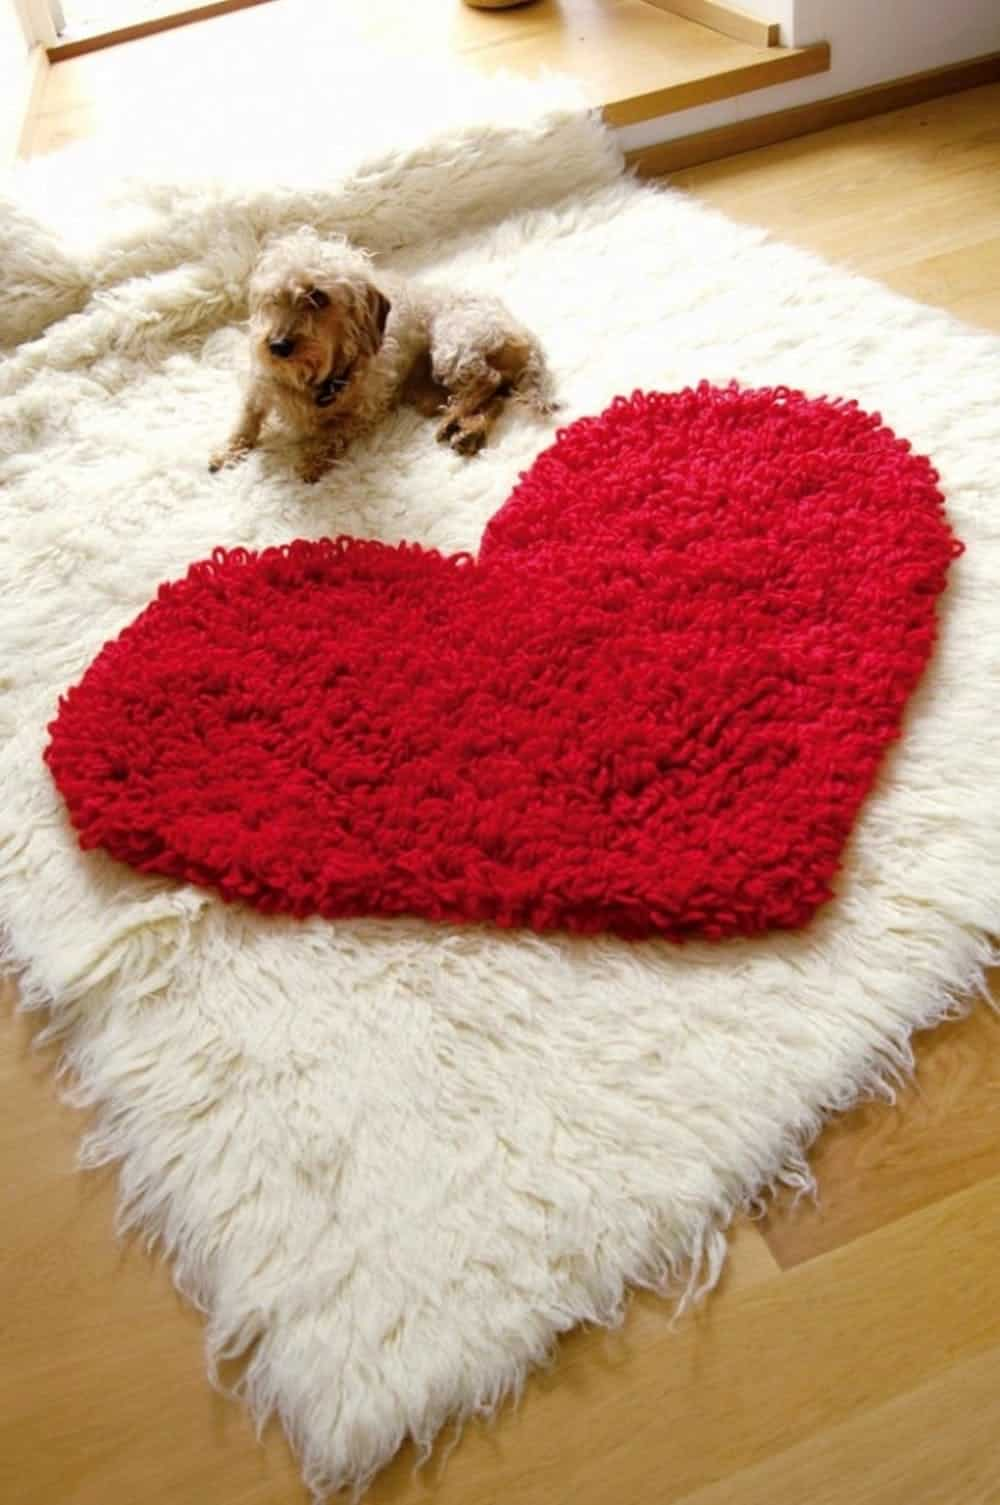 Heart crochet rug diy